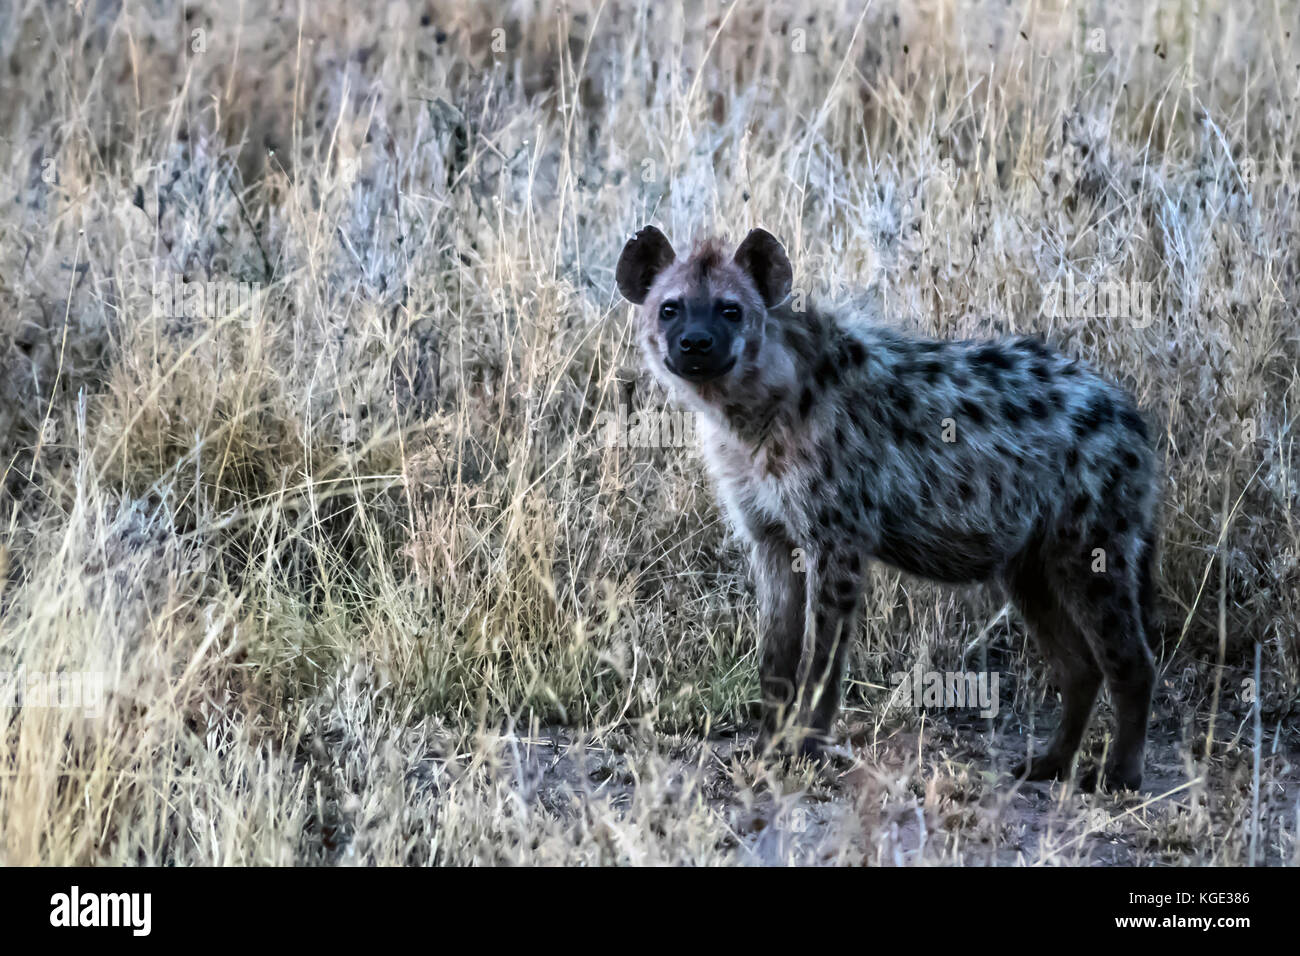 Beautiful spotted hyena in the savanna grasses of Tanzania's Northern Serengeti. Set of three images. - Stock Image